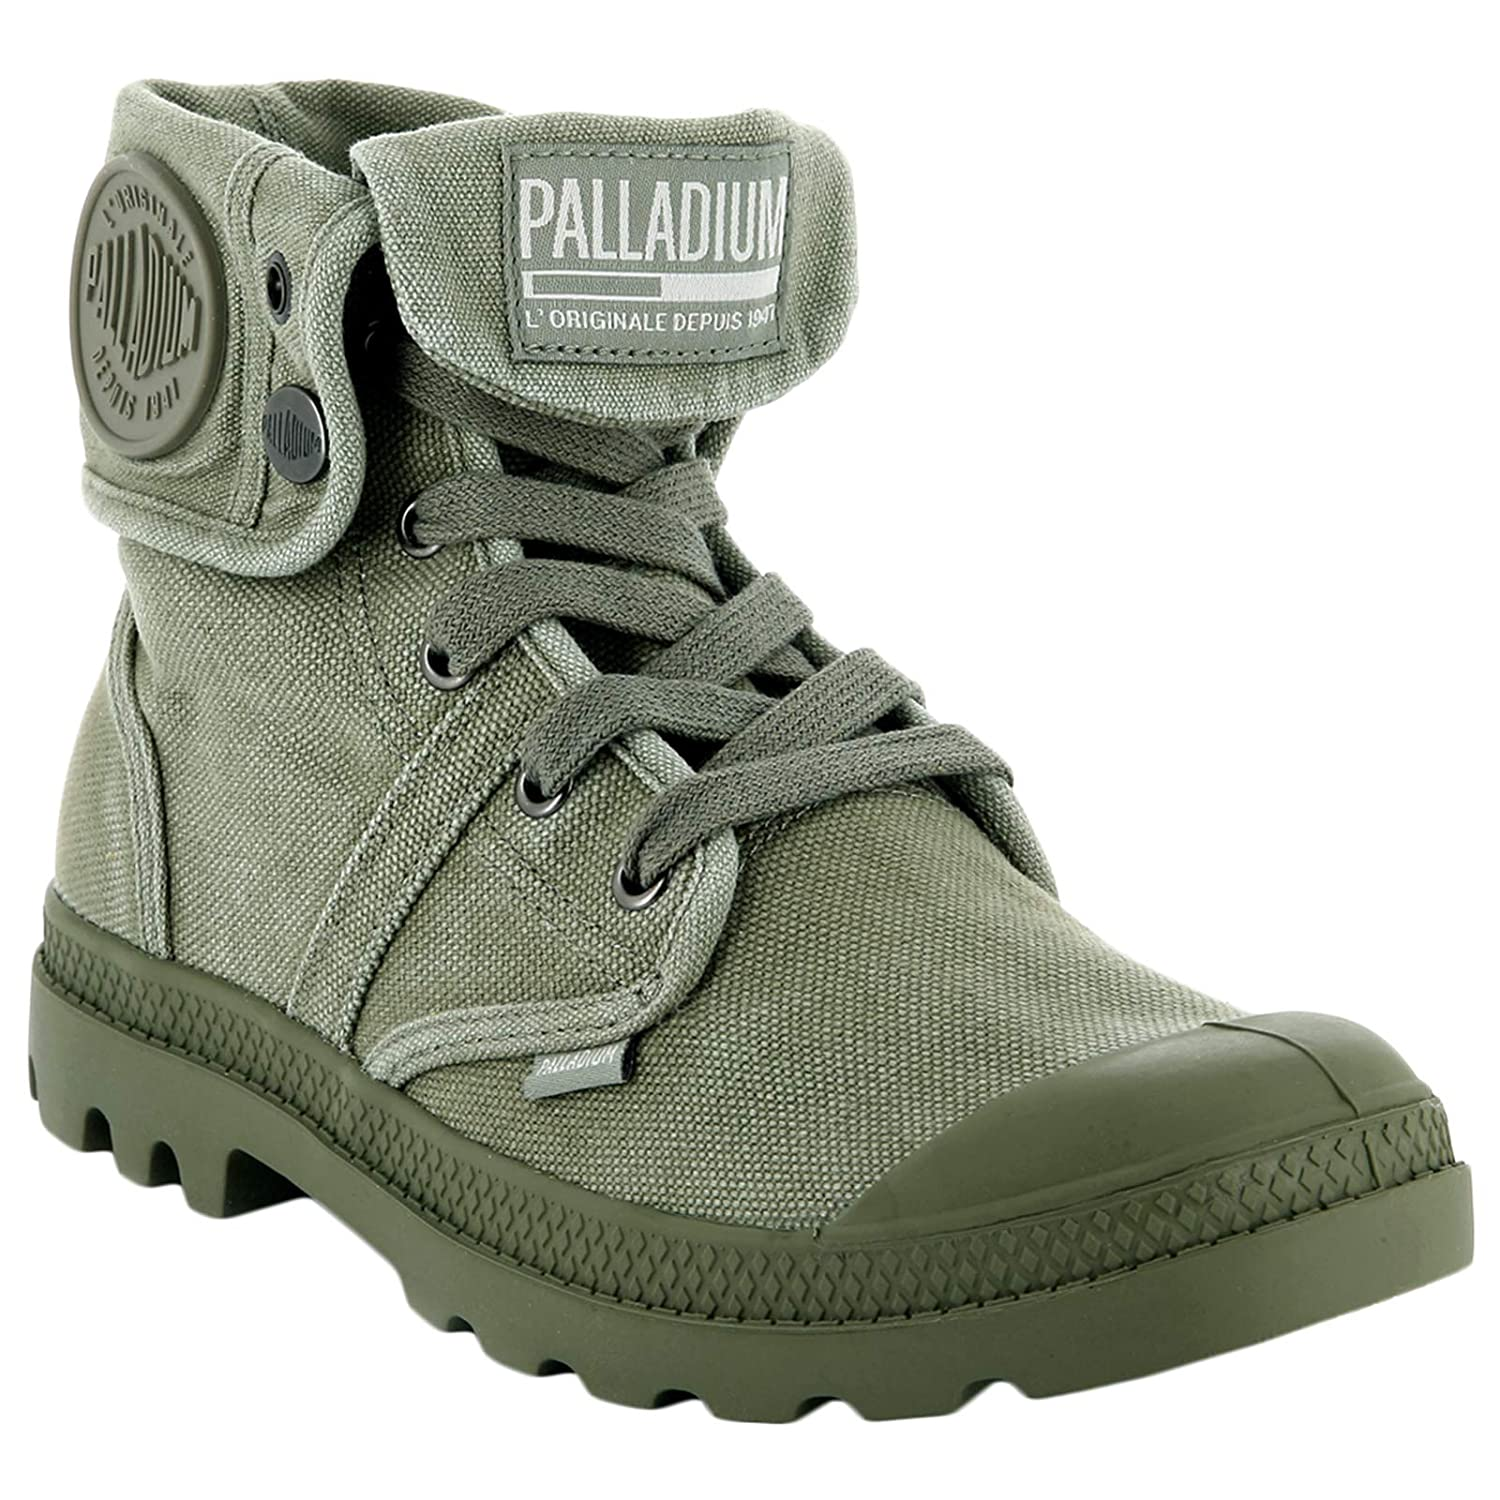 Palladium Us Baggy, Boots homme Baggy, Boots 10113 Vert da1b058 - therethere.space